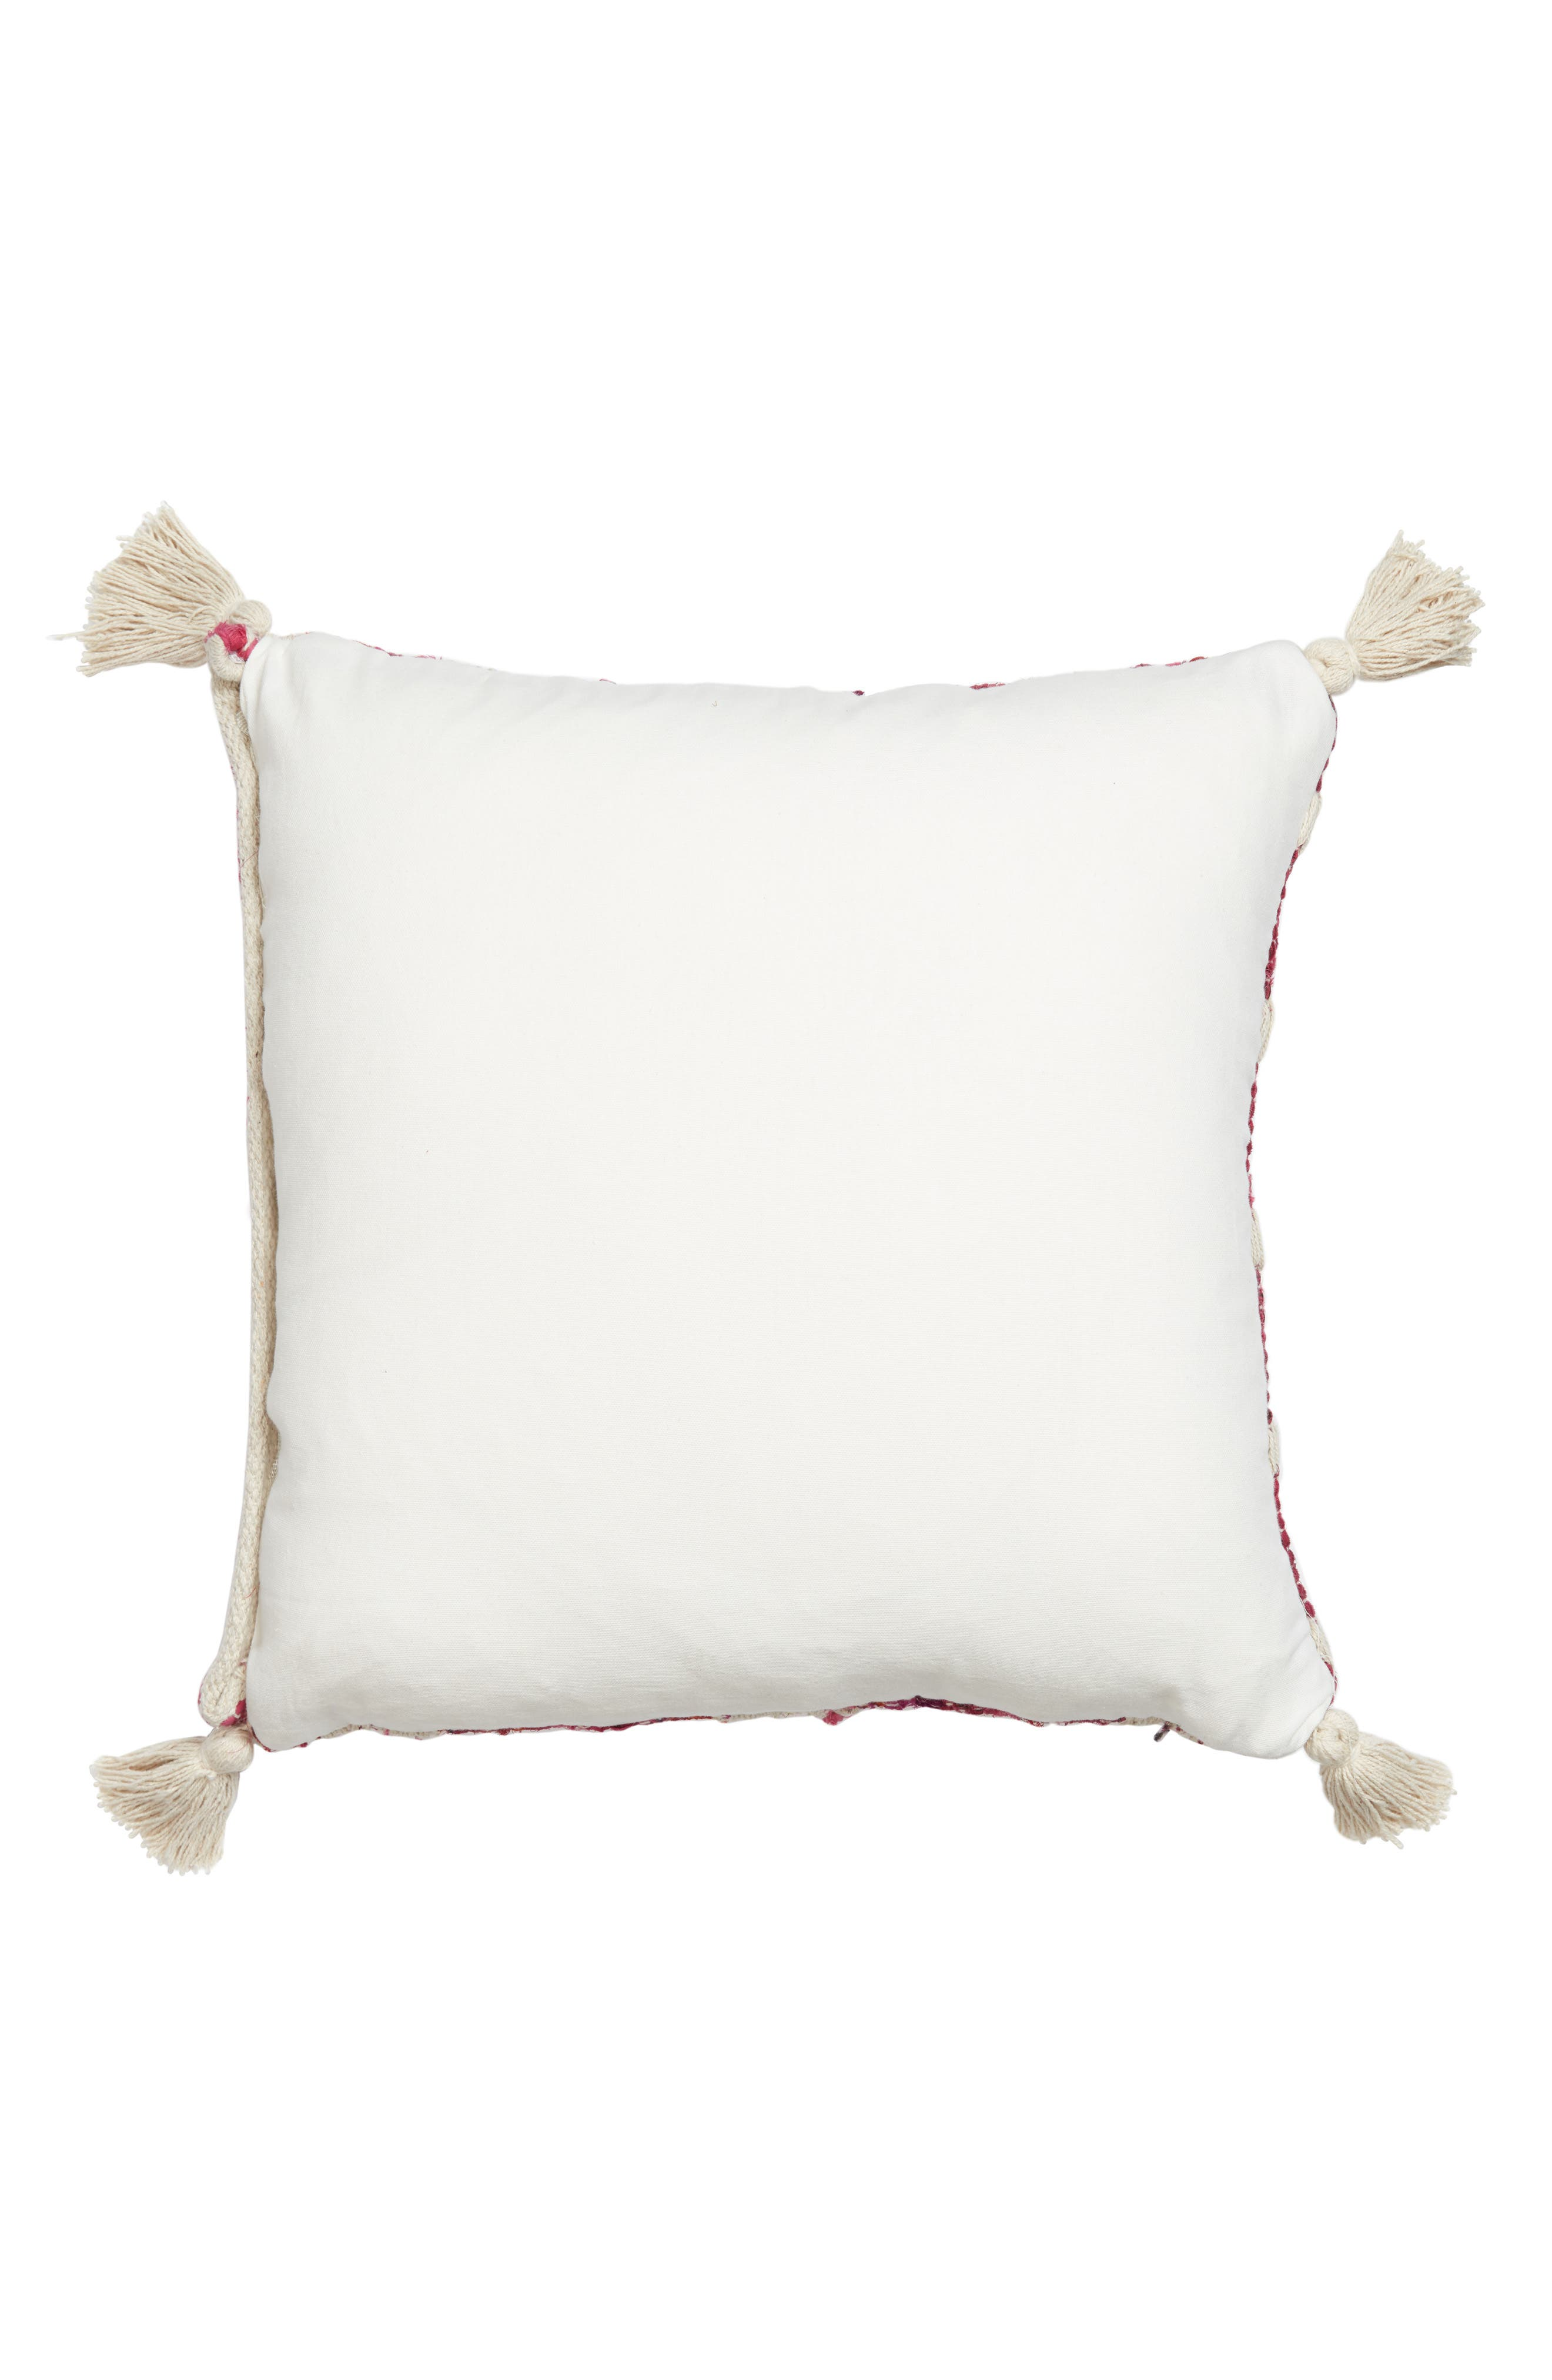 BRENTWOOD ORIGINALS,                             Diamond Chindi Accent Pillow,                             Alternate thumbnail 2, color,                             671